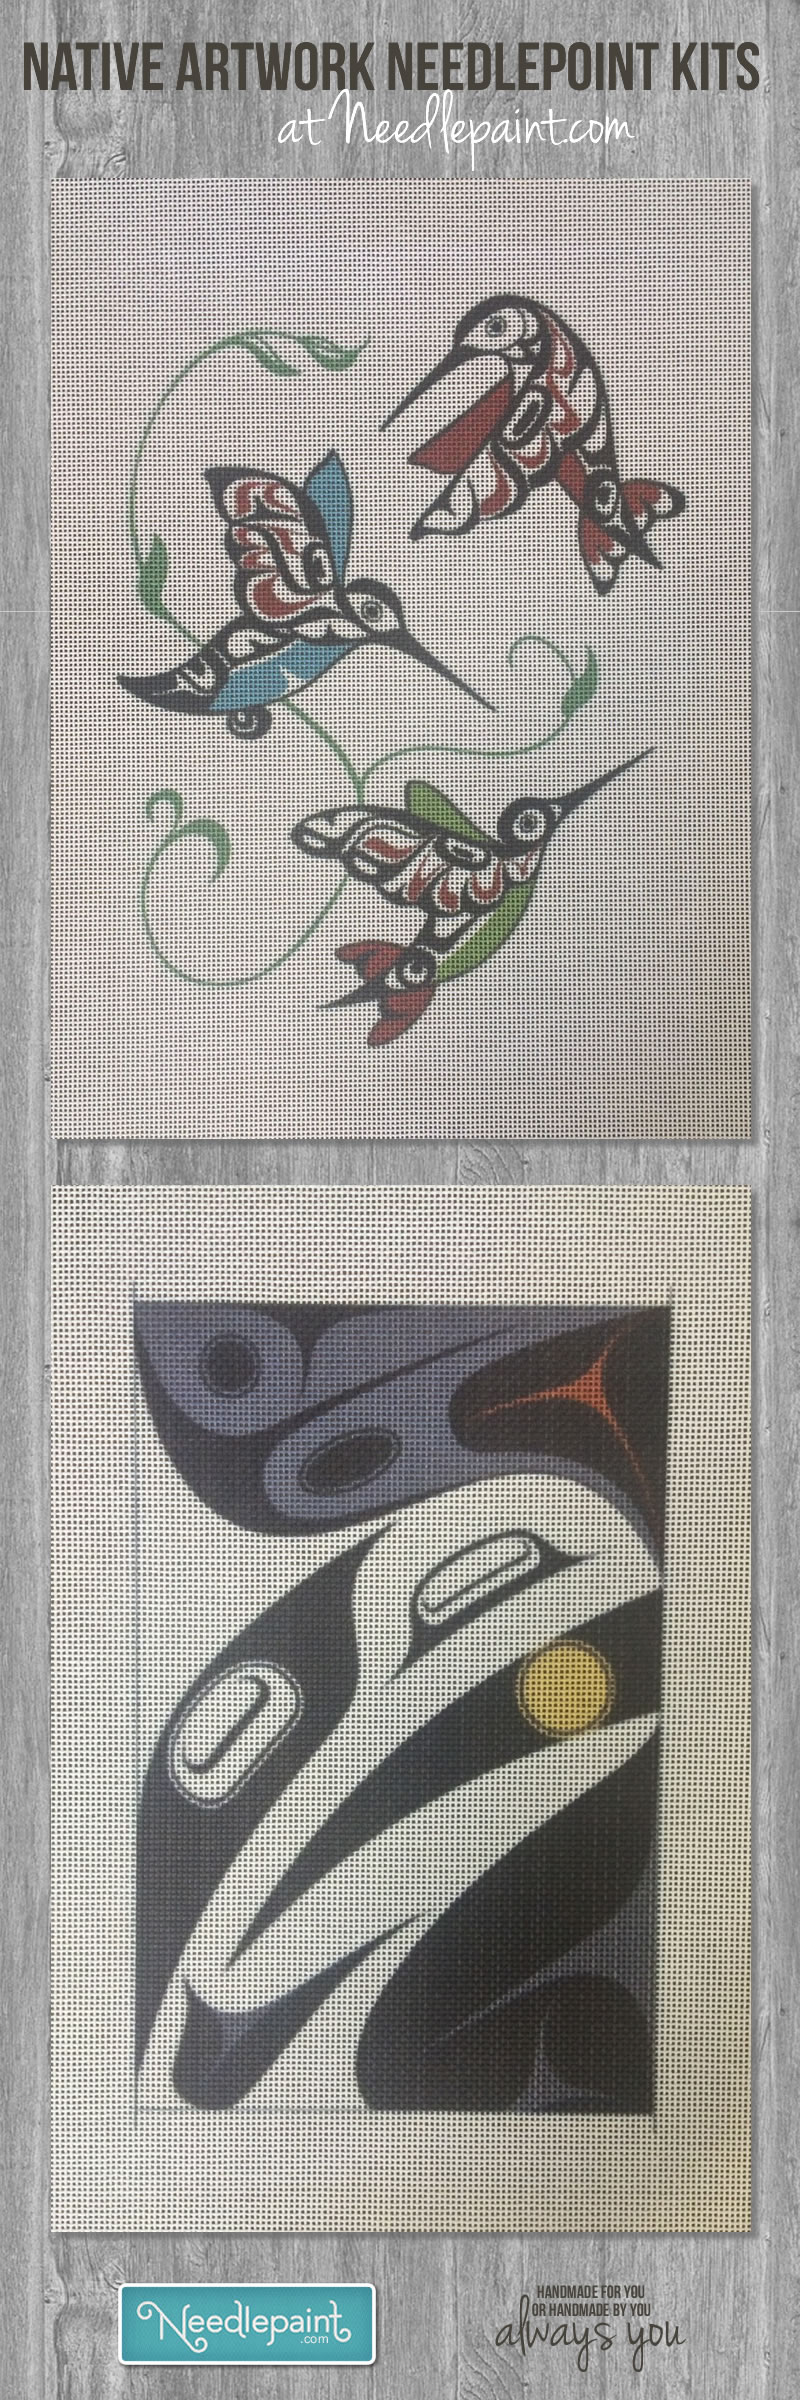 Custom Native American Artwork Needlepoint Canvases